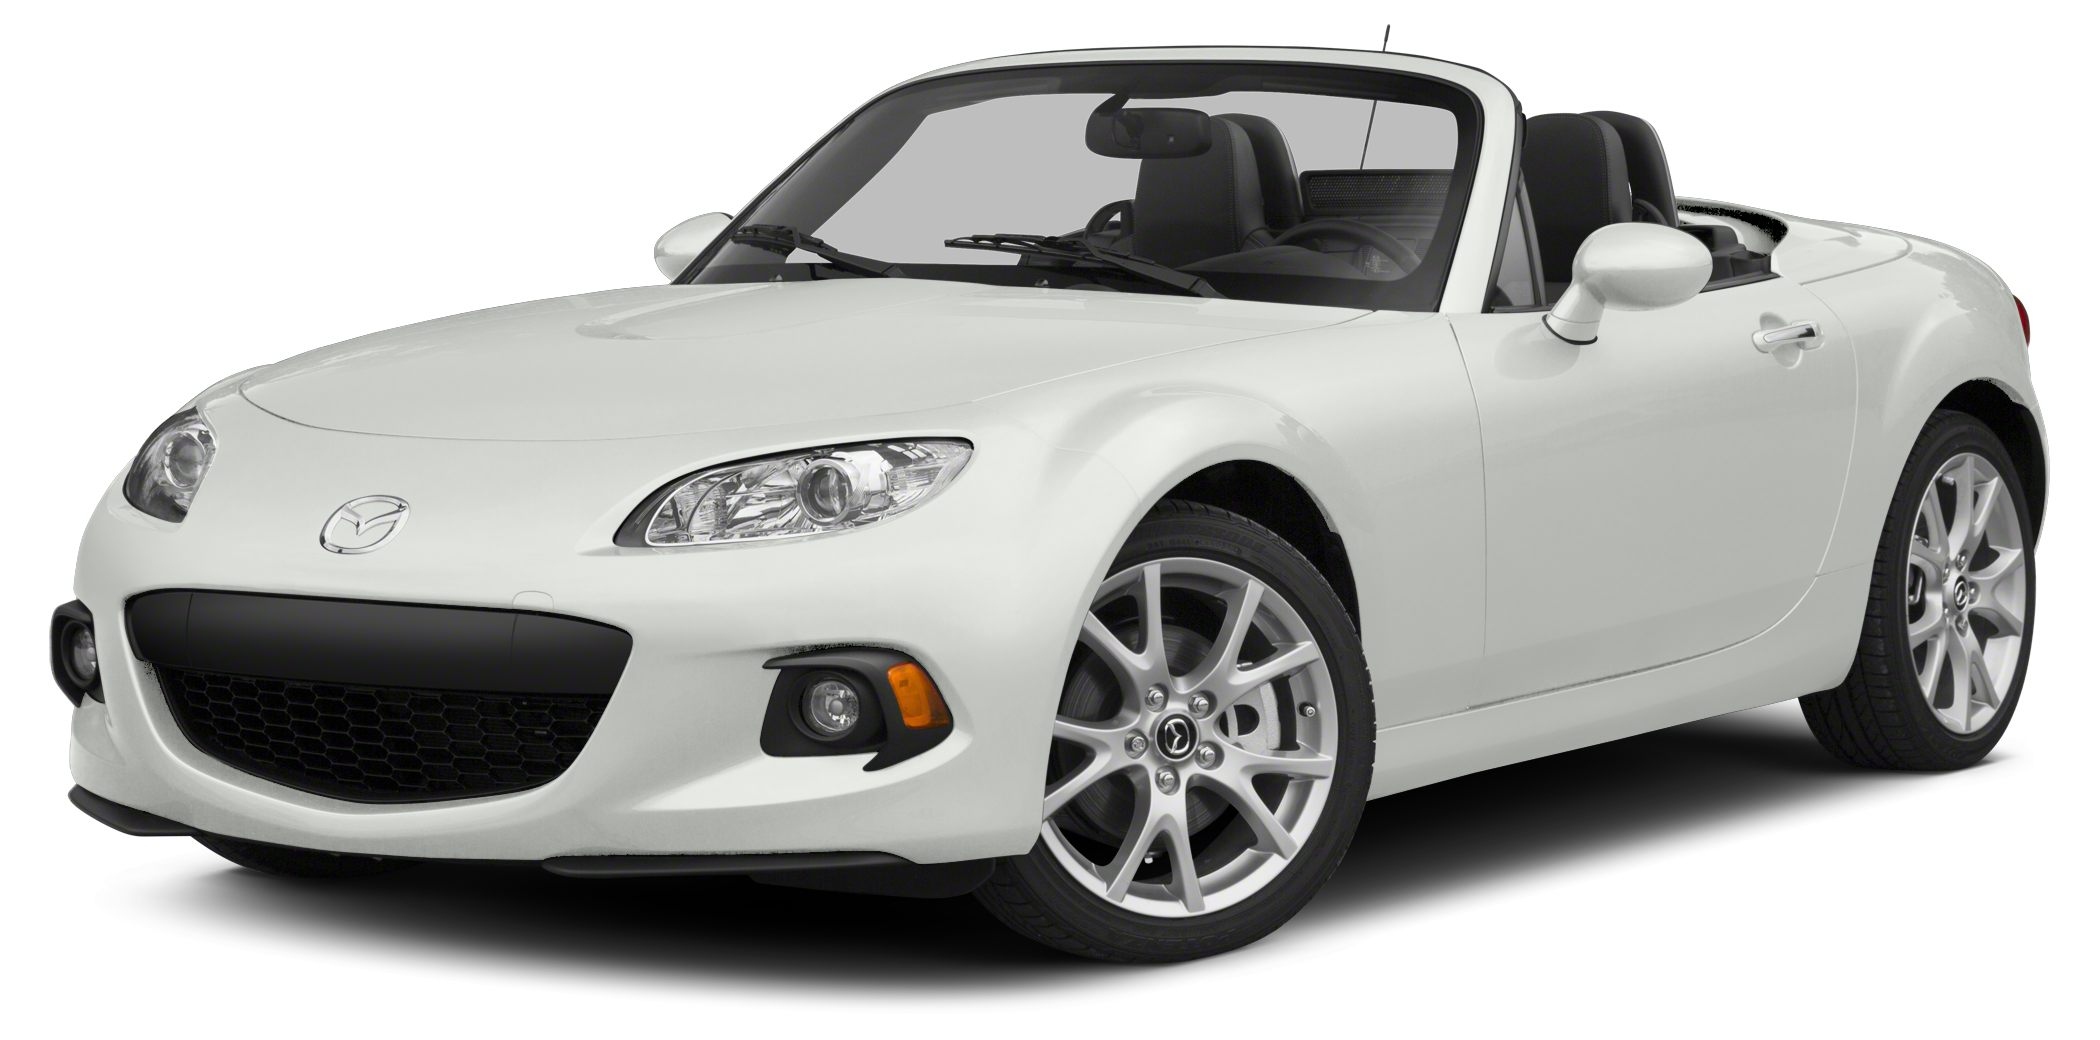 2015 Mazda Miata Club Are you interested in a simply great car Outstanding design defines the 201